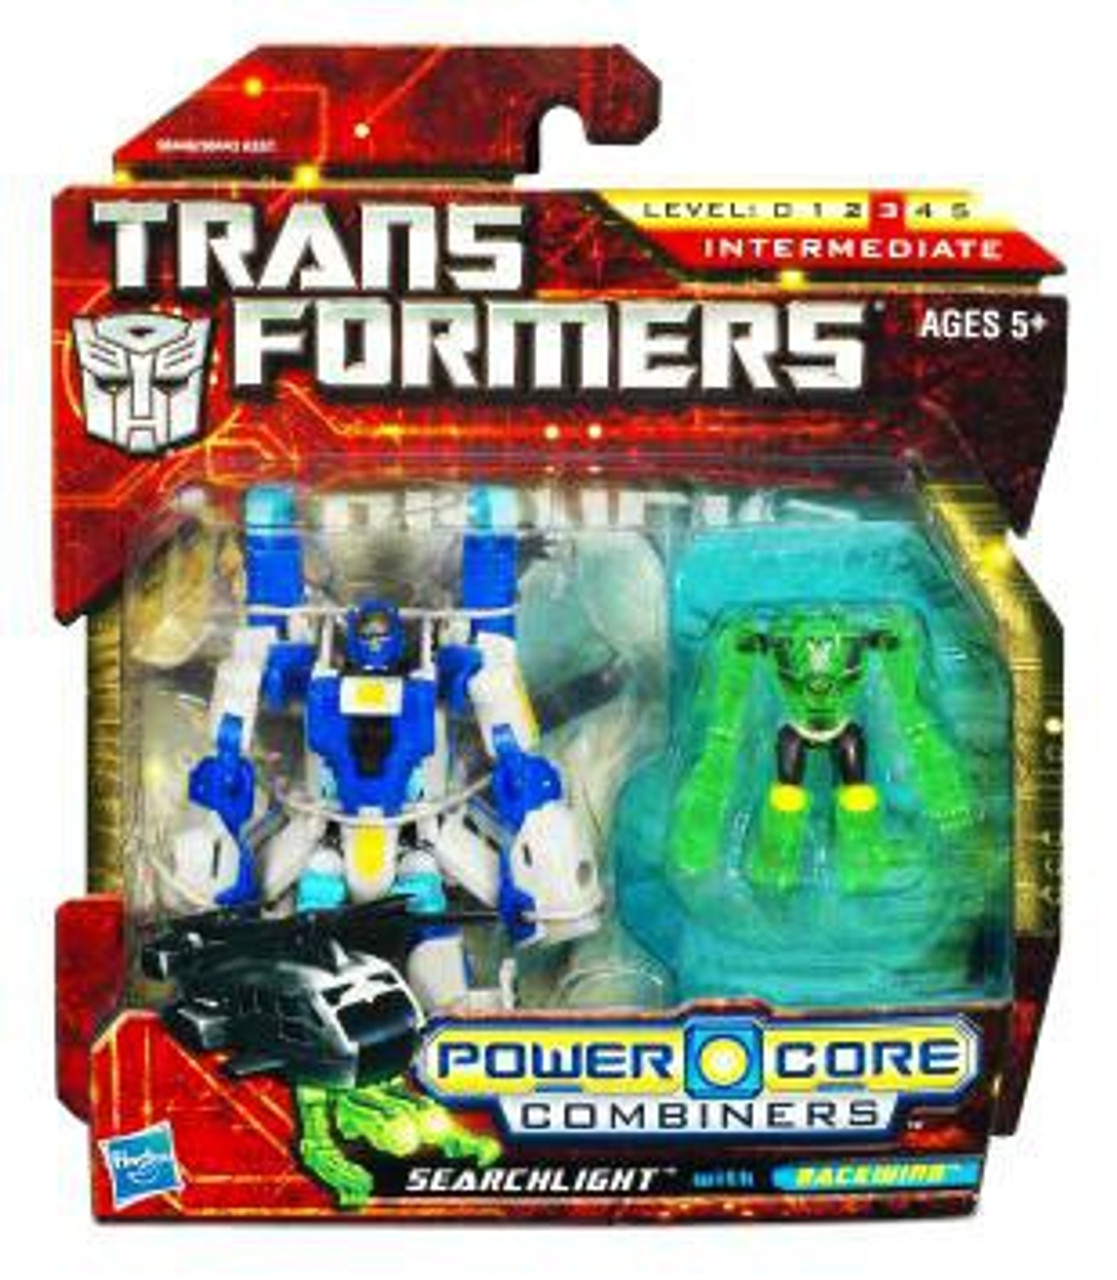 Transformers Power Core Combiners Searchlight with Backwind Action Figure 2-Pack